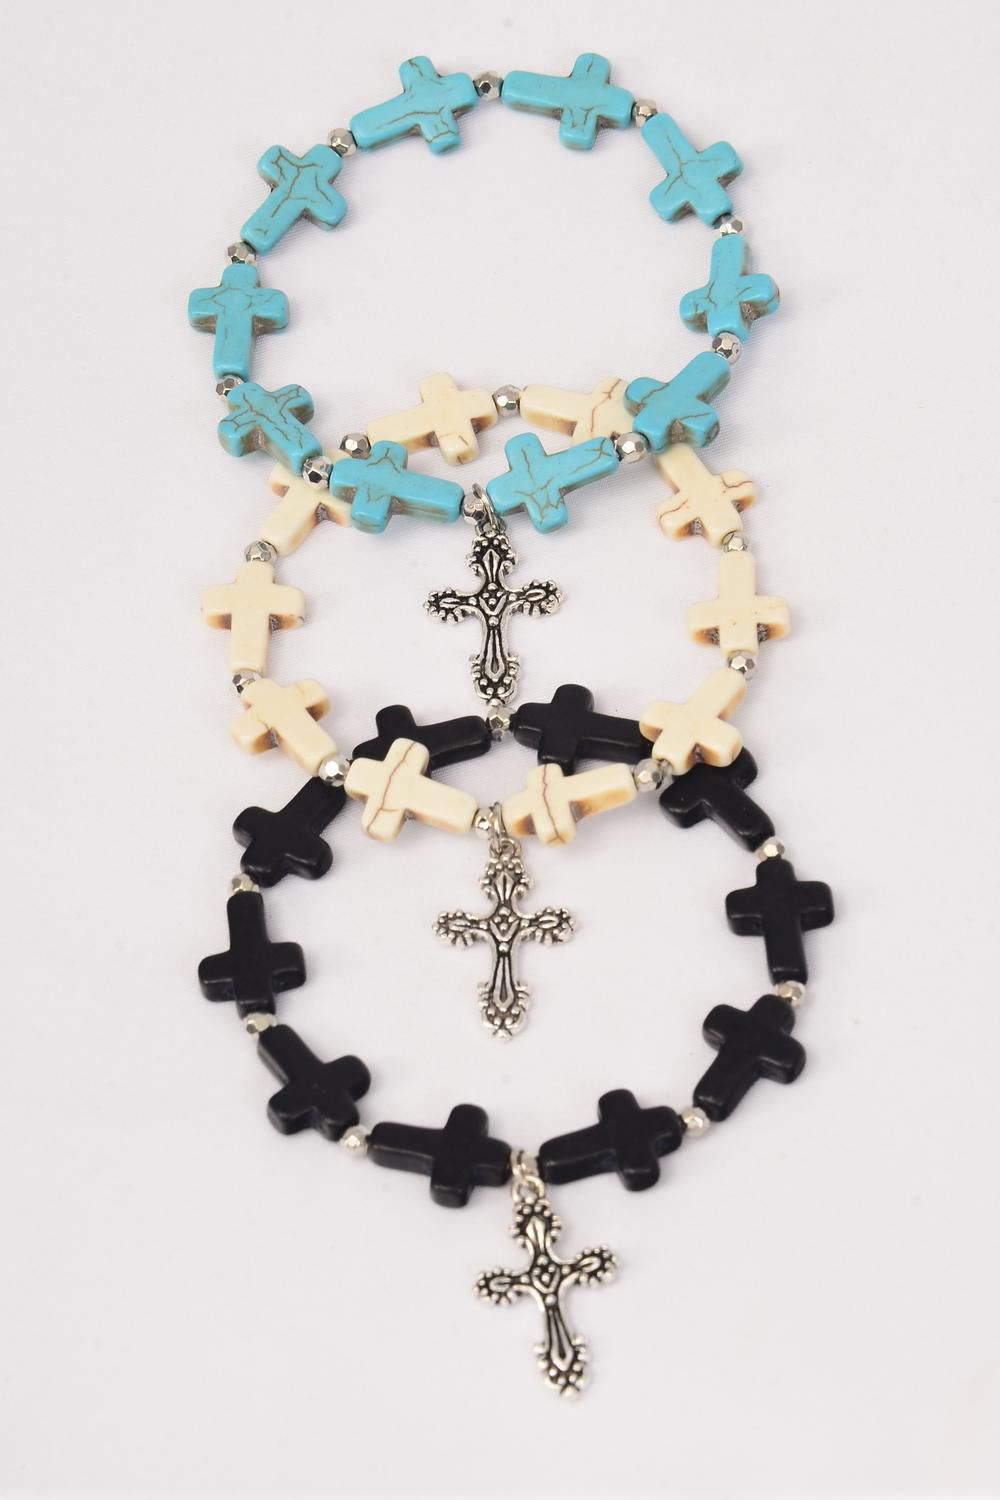 Bracelet Crosses W Cross Charm Stretch/DZ **Stretch** 4 Black,4 Ivory,4 Turquoise Asst,Hang Tag & OPP Bag & UPC Code